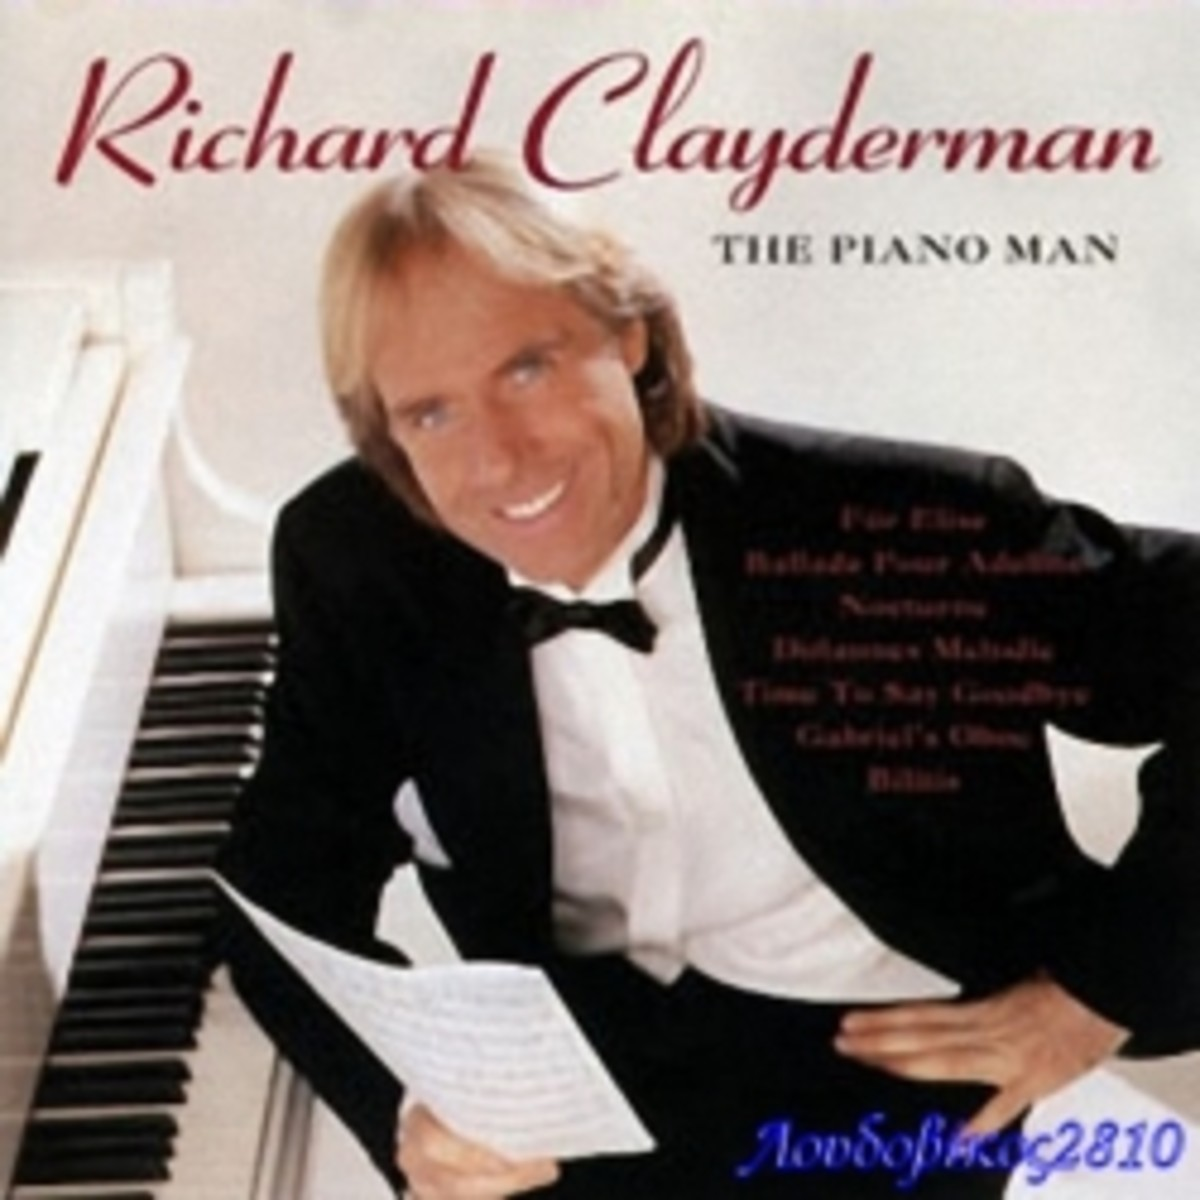 My Top 10 Instrumental Music of Richard Clayderman